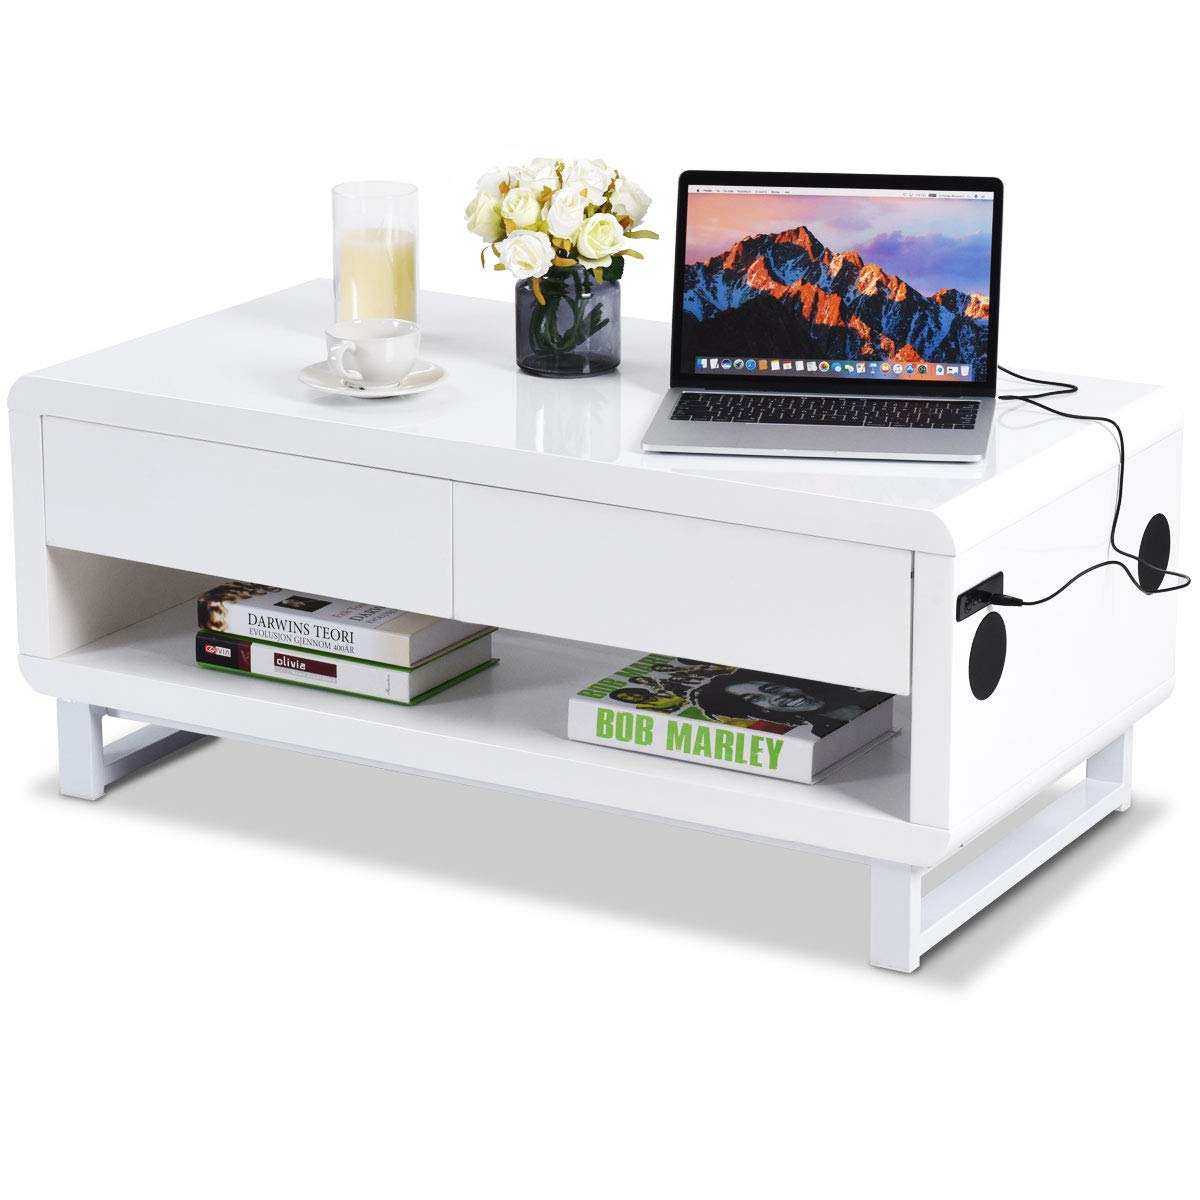 Tangkula Modern Coffee Table, W/Drawer Lights USB Charging Port/Built-in Bluetooth Speakers Console Table, Innovative Living Room Furniture, Coffee Table (White) by Tangkula